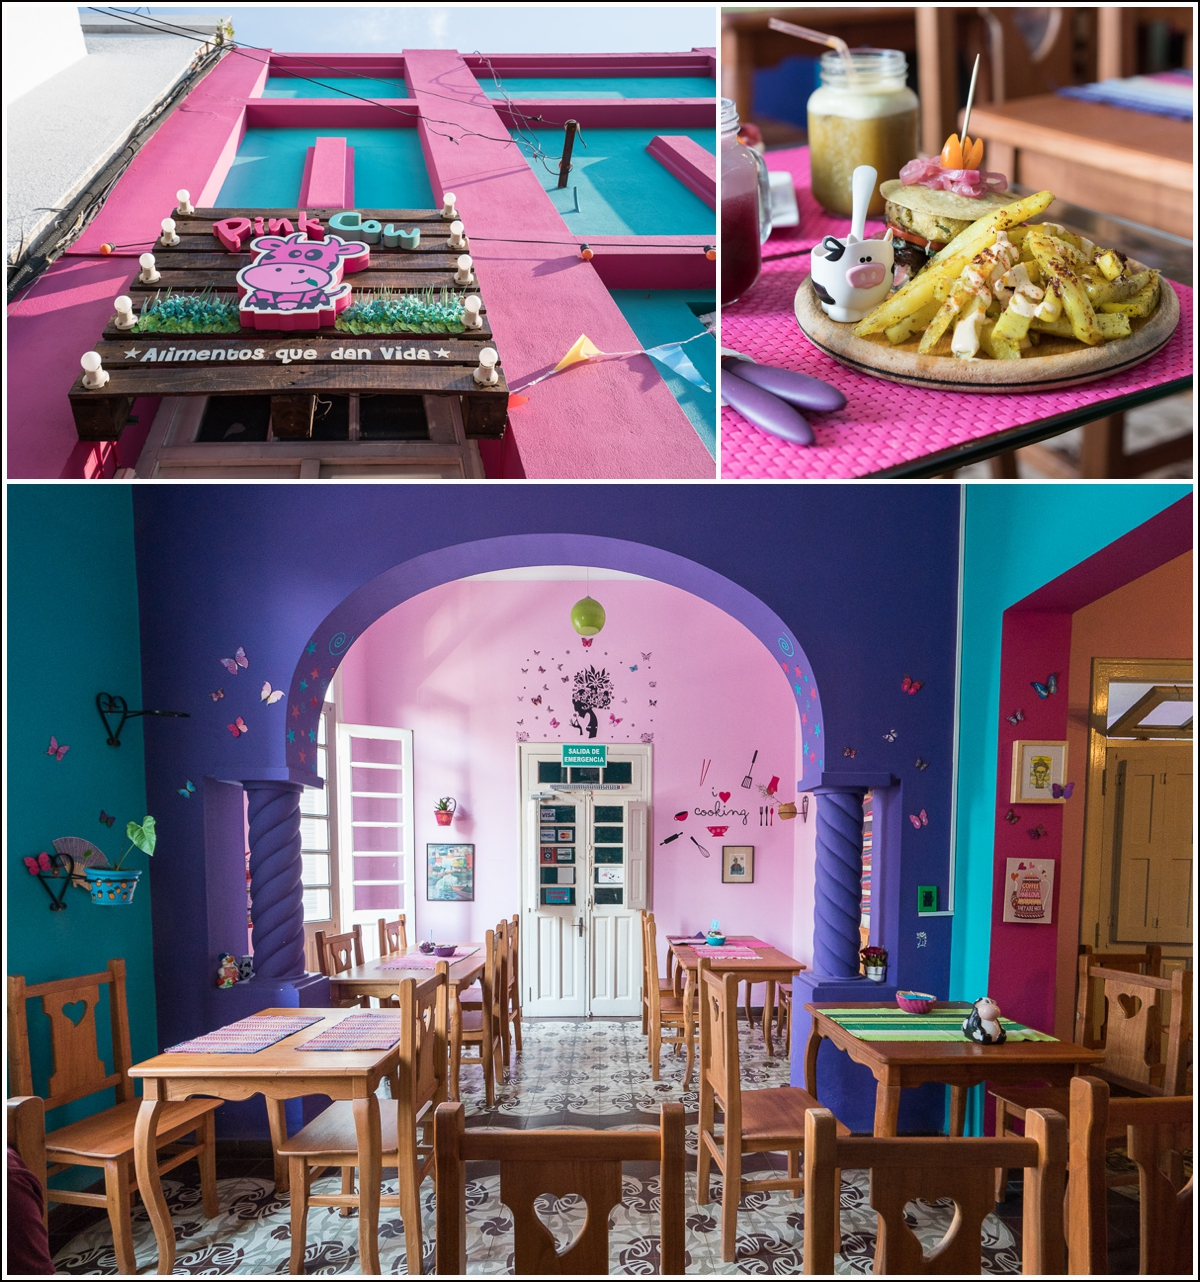 Pink Cow vegetarrestaurant i Asuncion